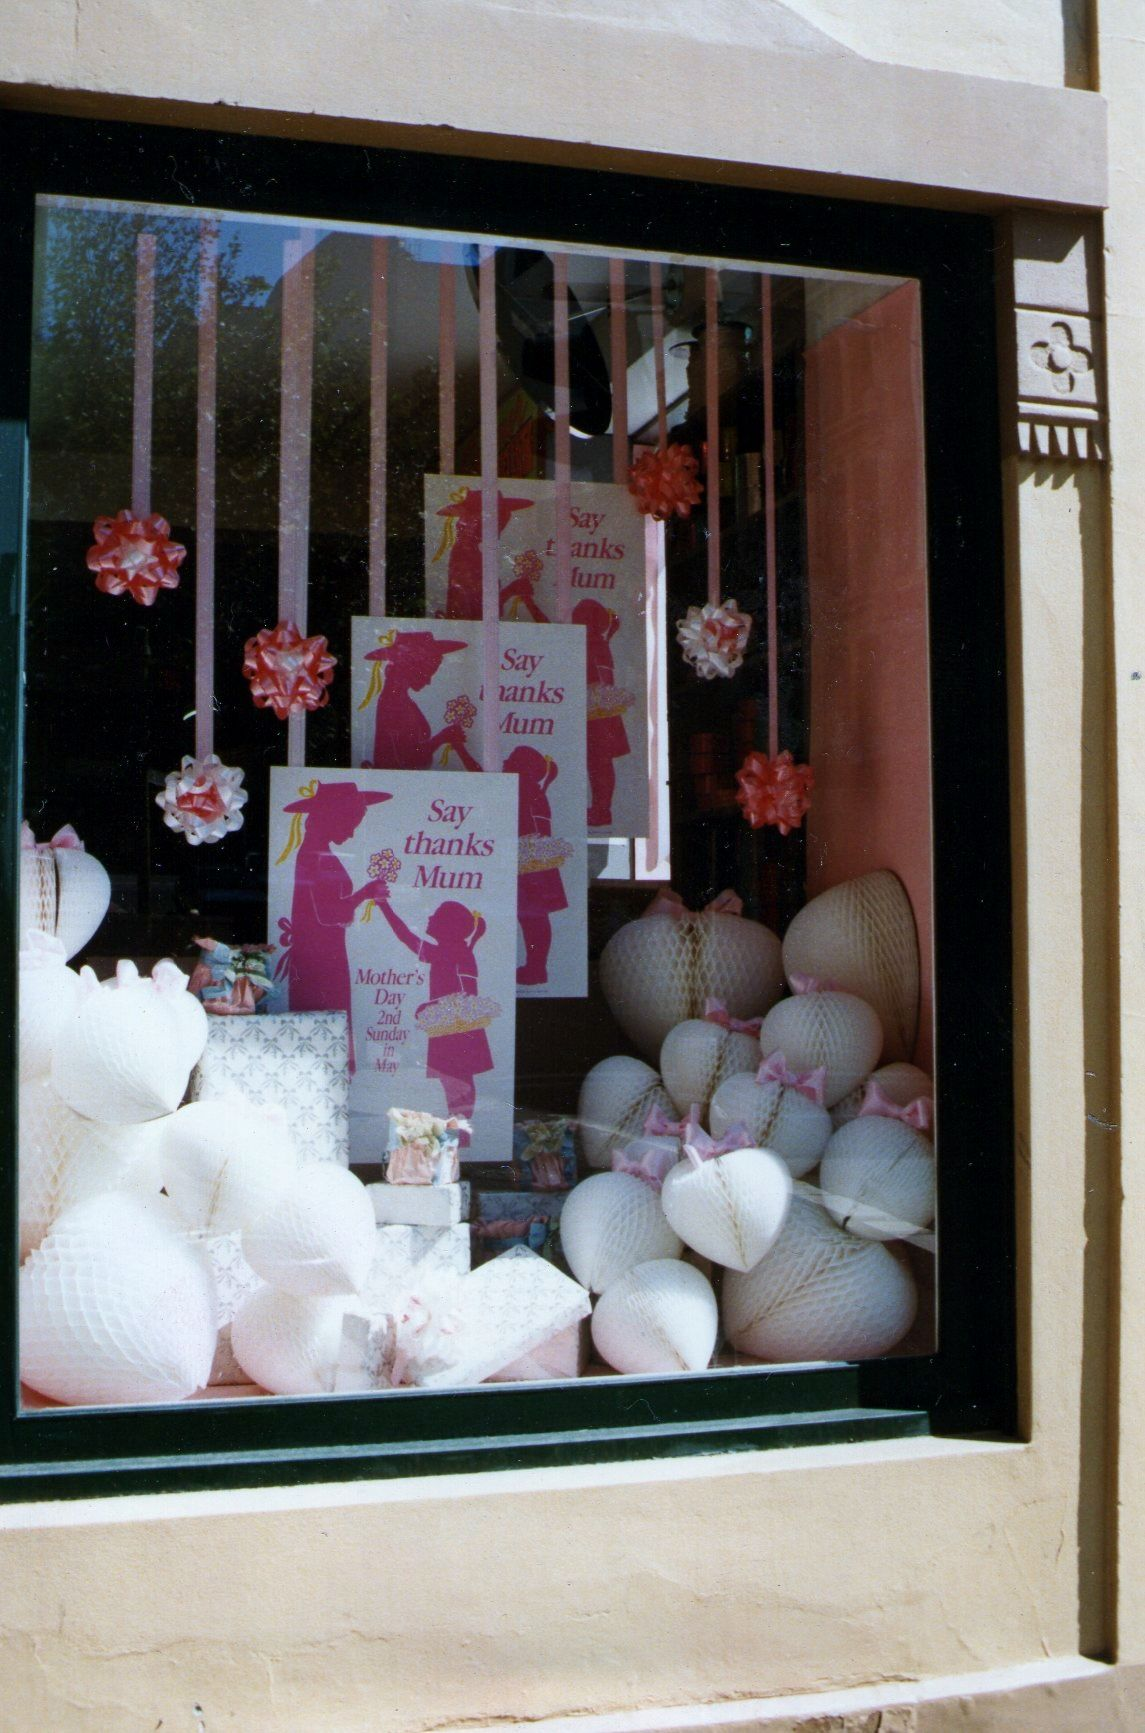 My Own Display Work Mother S Day Window Vitrines Dia Das Maes